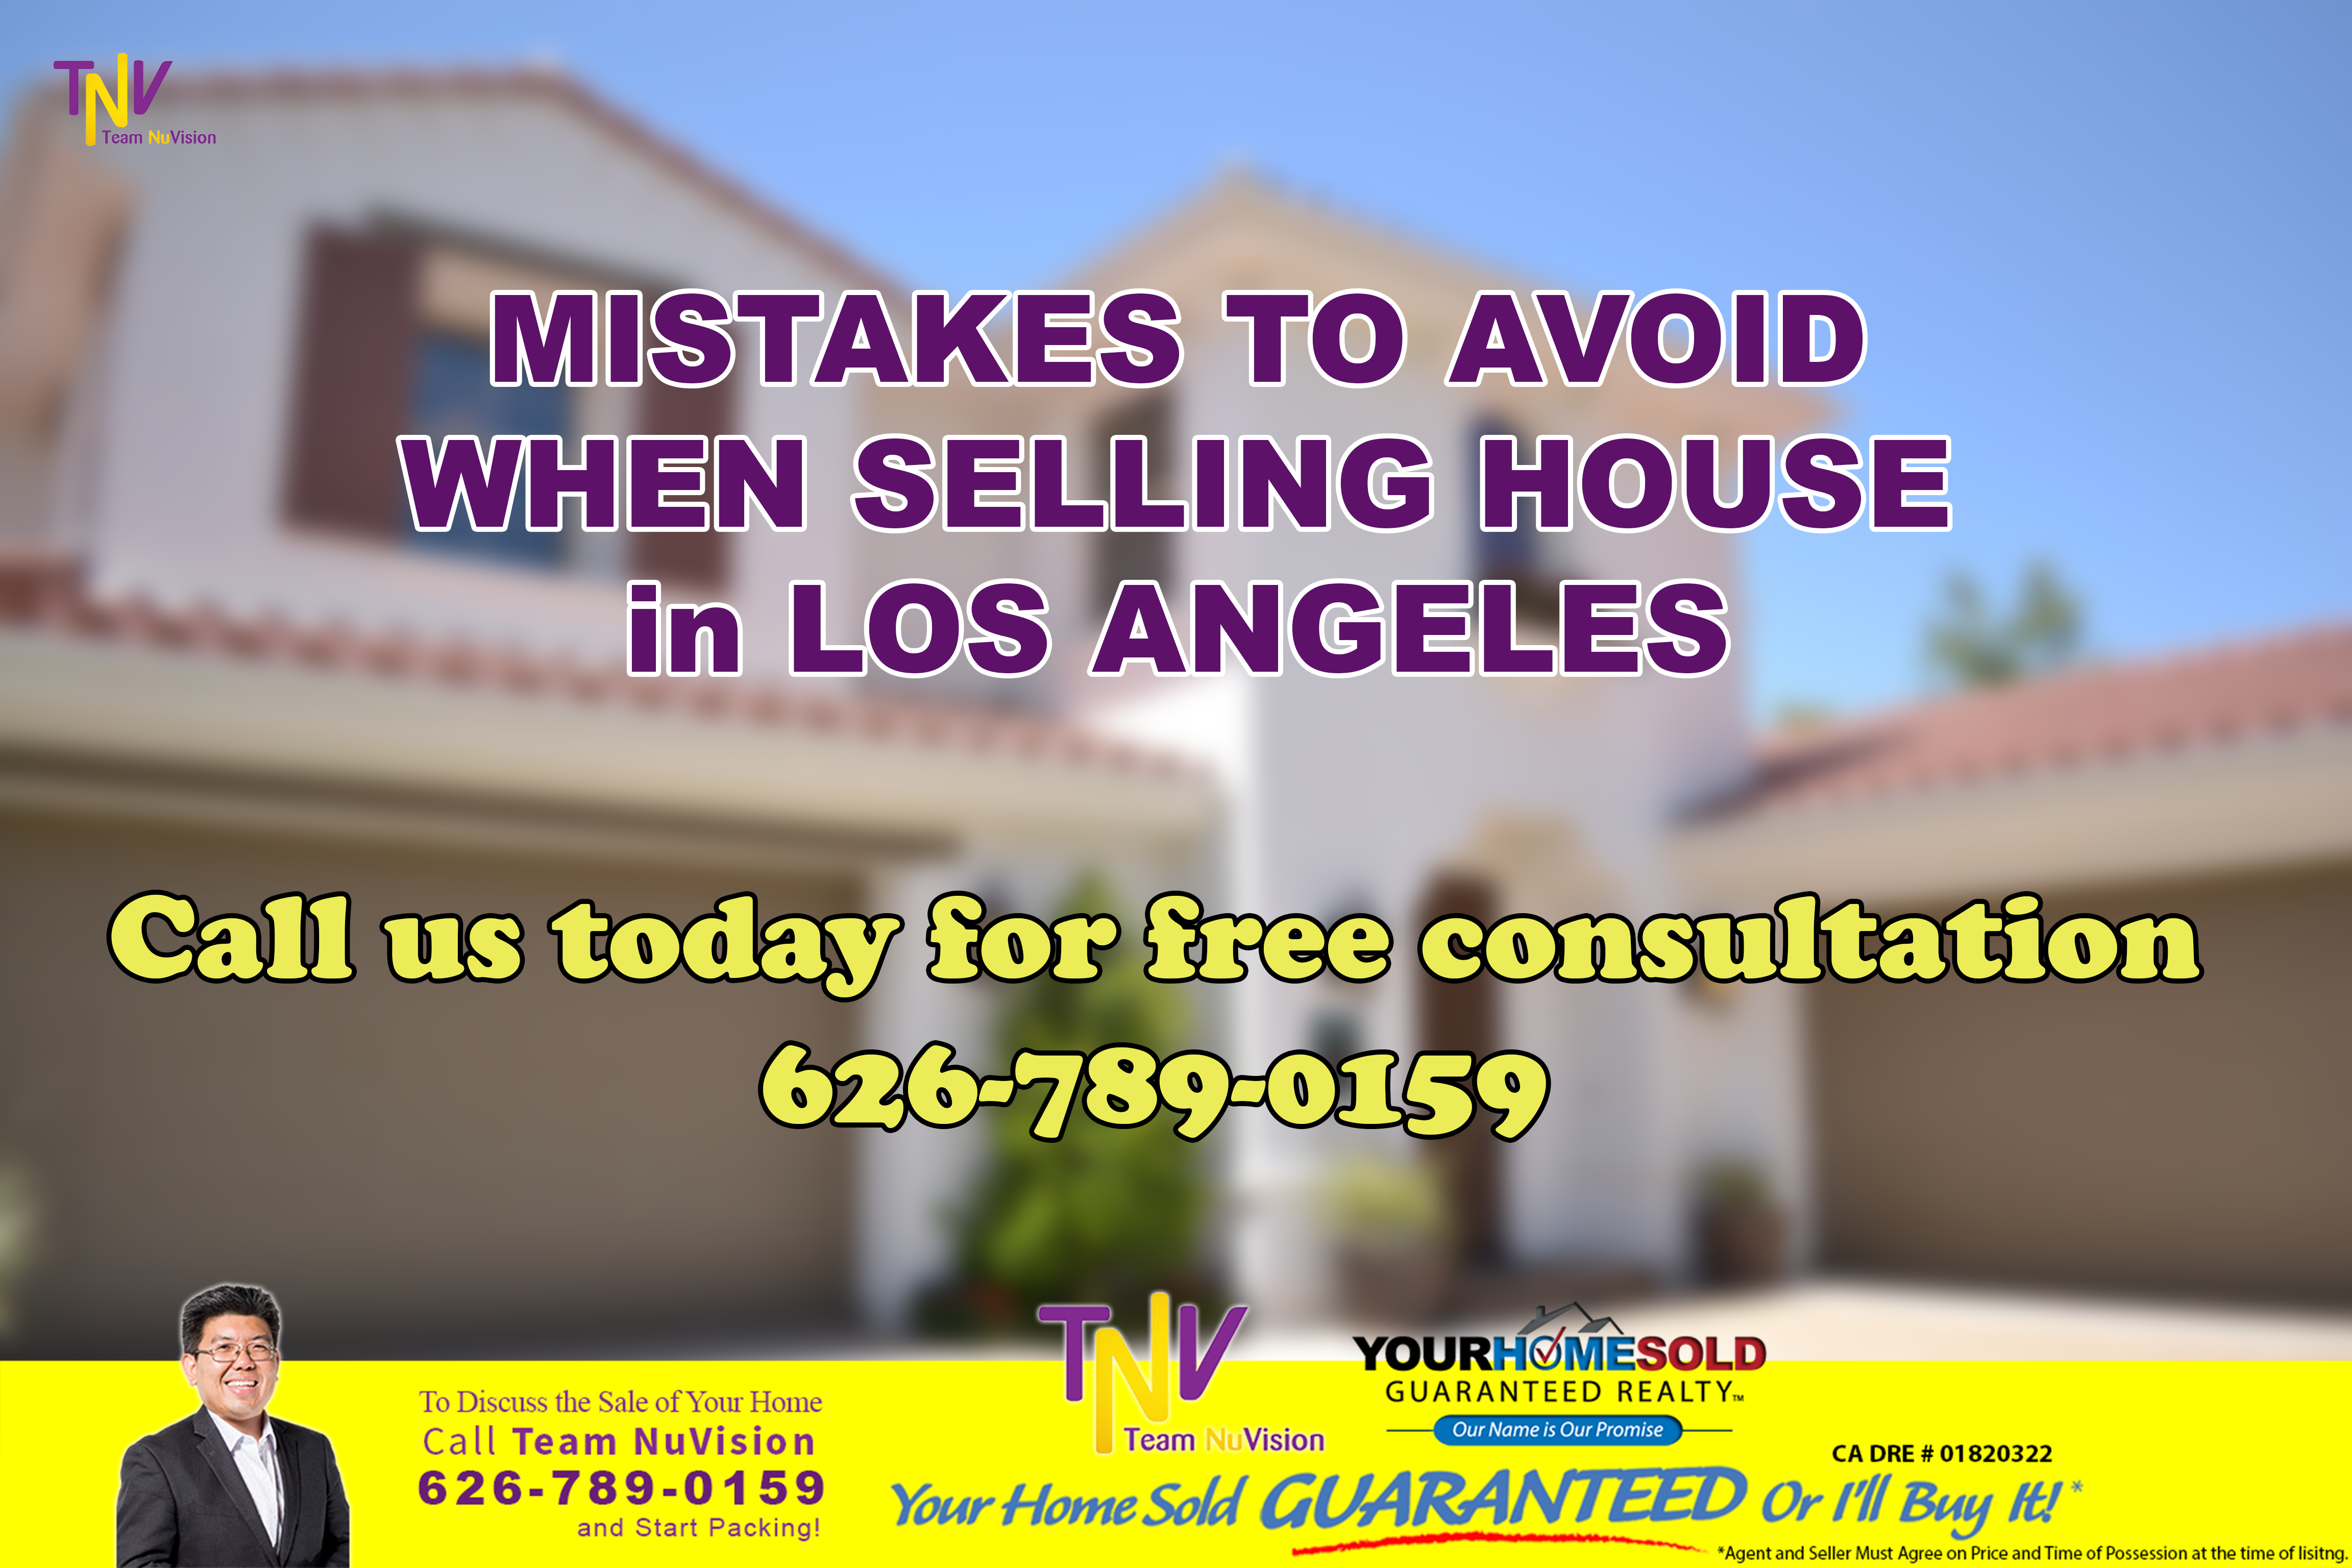 Mistakes to Avoid When Selling House in Los Angeles